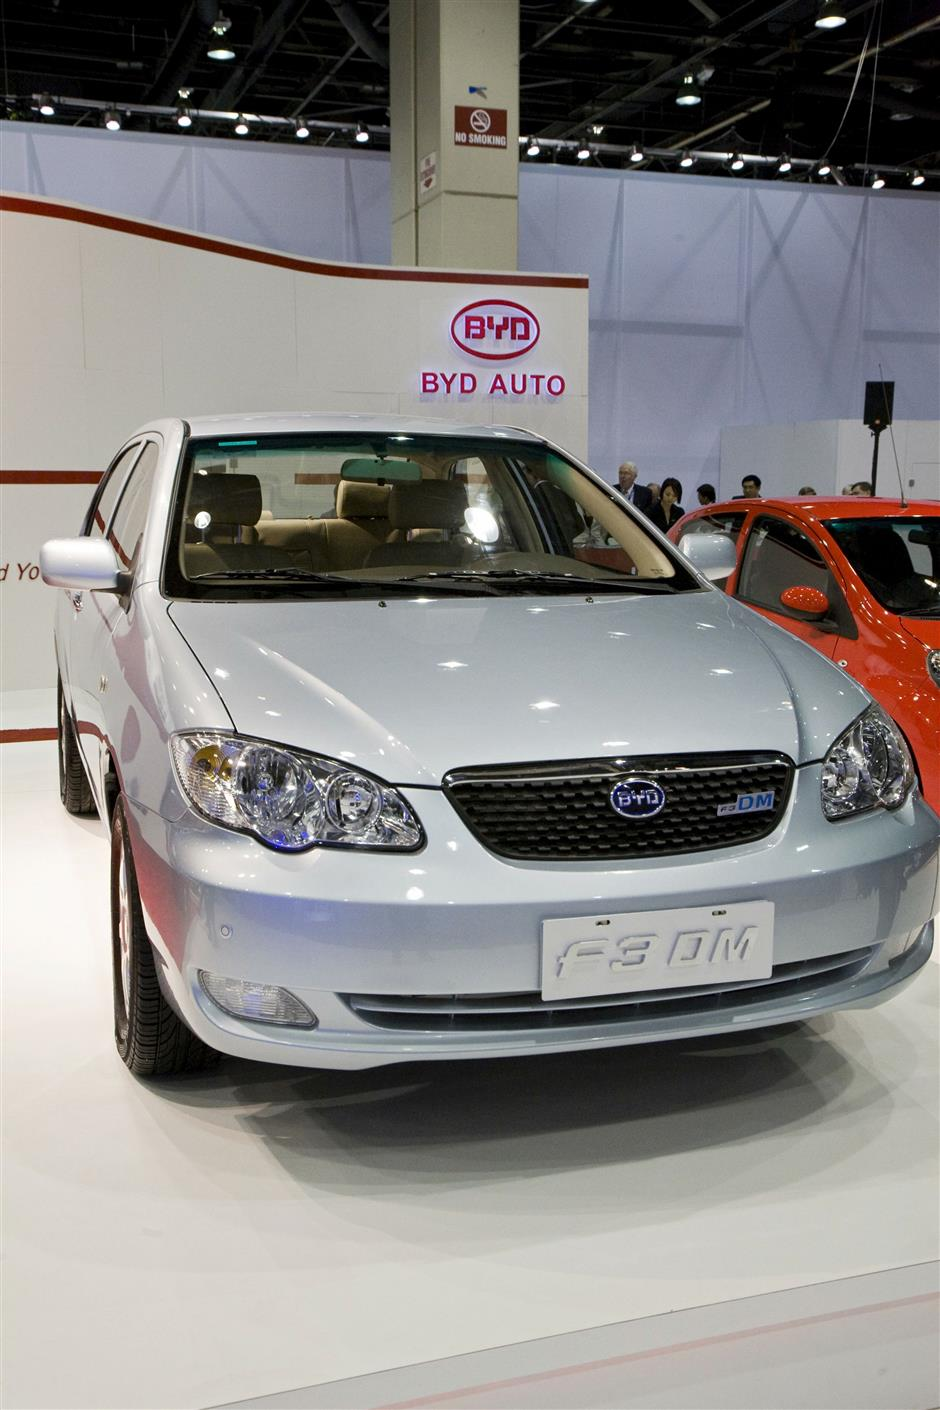 China's BYD named No. 2 on list of World's Top 10 Most Innovative Companies in energy